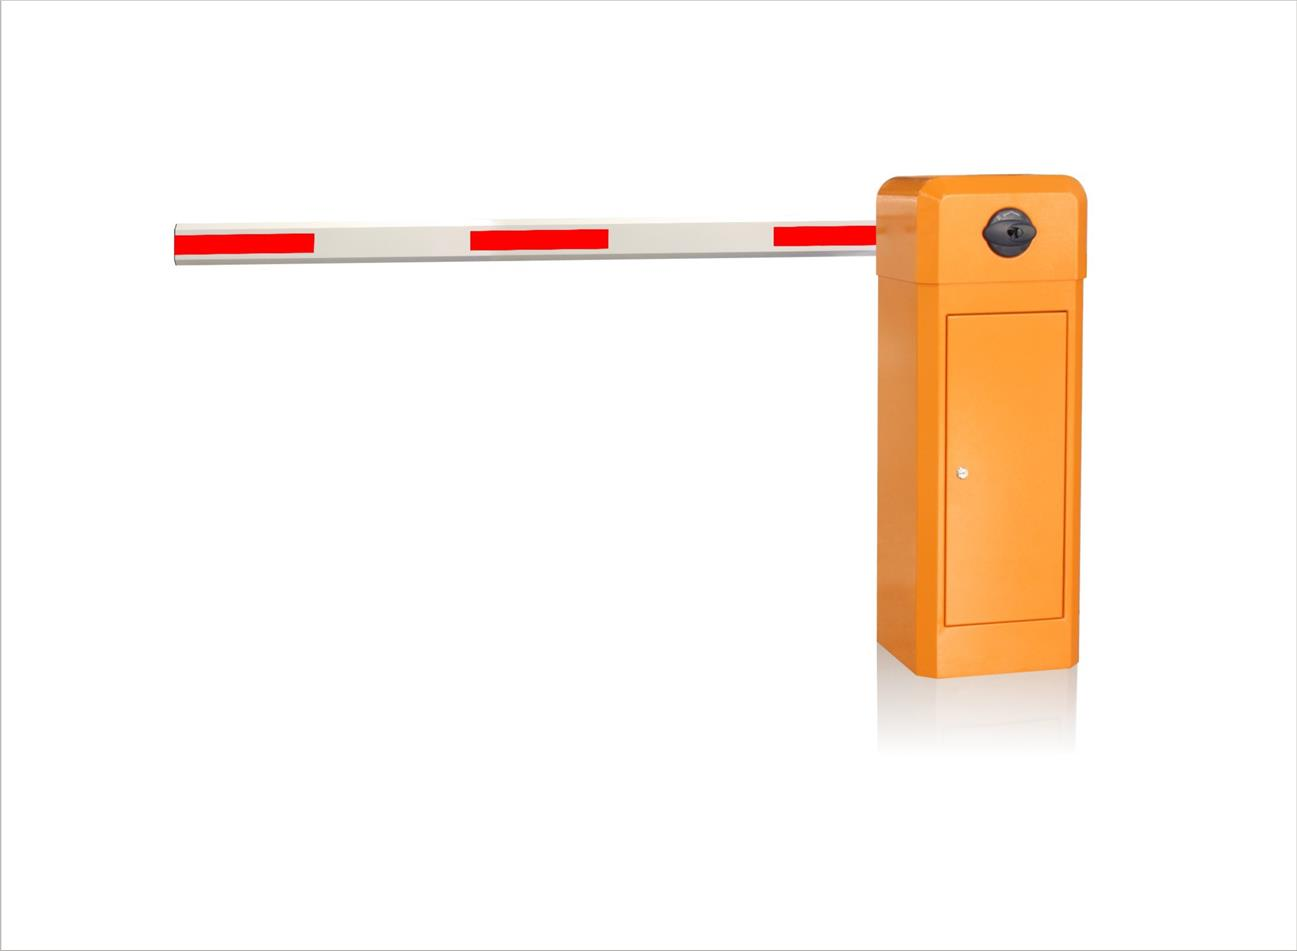 Le Meilleur Barrier Gate 3S Telescopic Swing Awa End 5 9 2020 6 15 Pm Ce Mois Ci